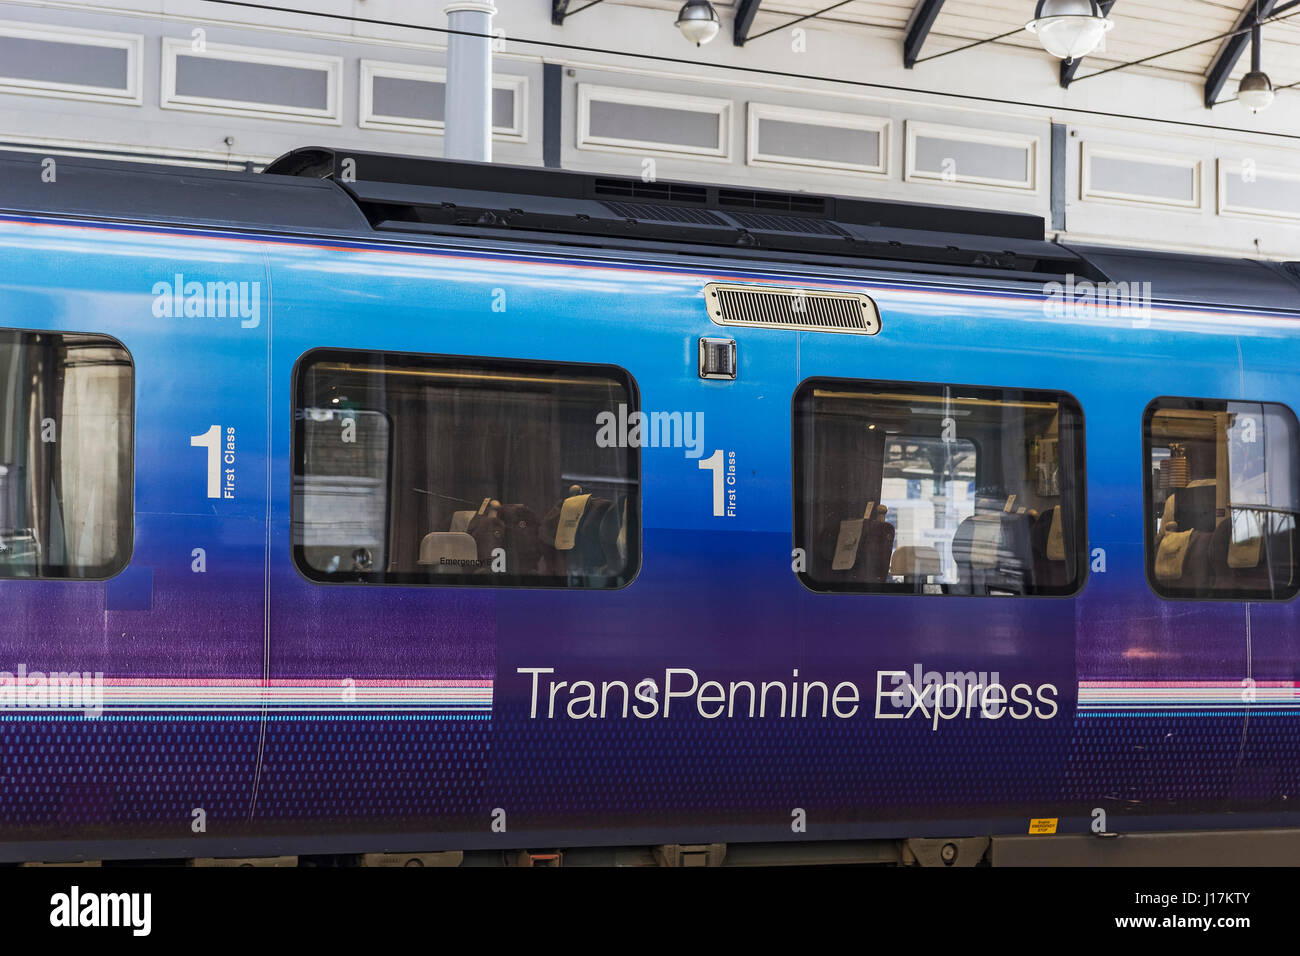 First Class compartment of a TransPennine Express train at Newcastle station - Stock Image